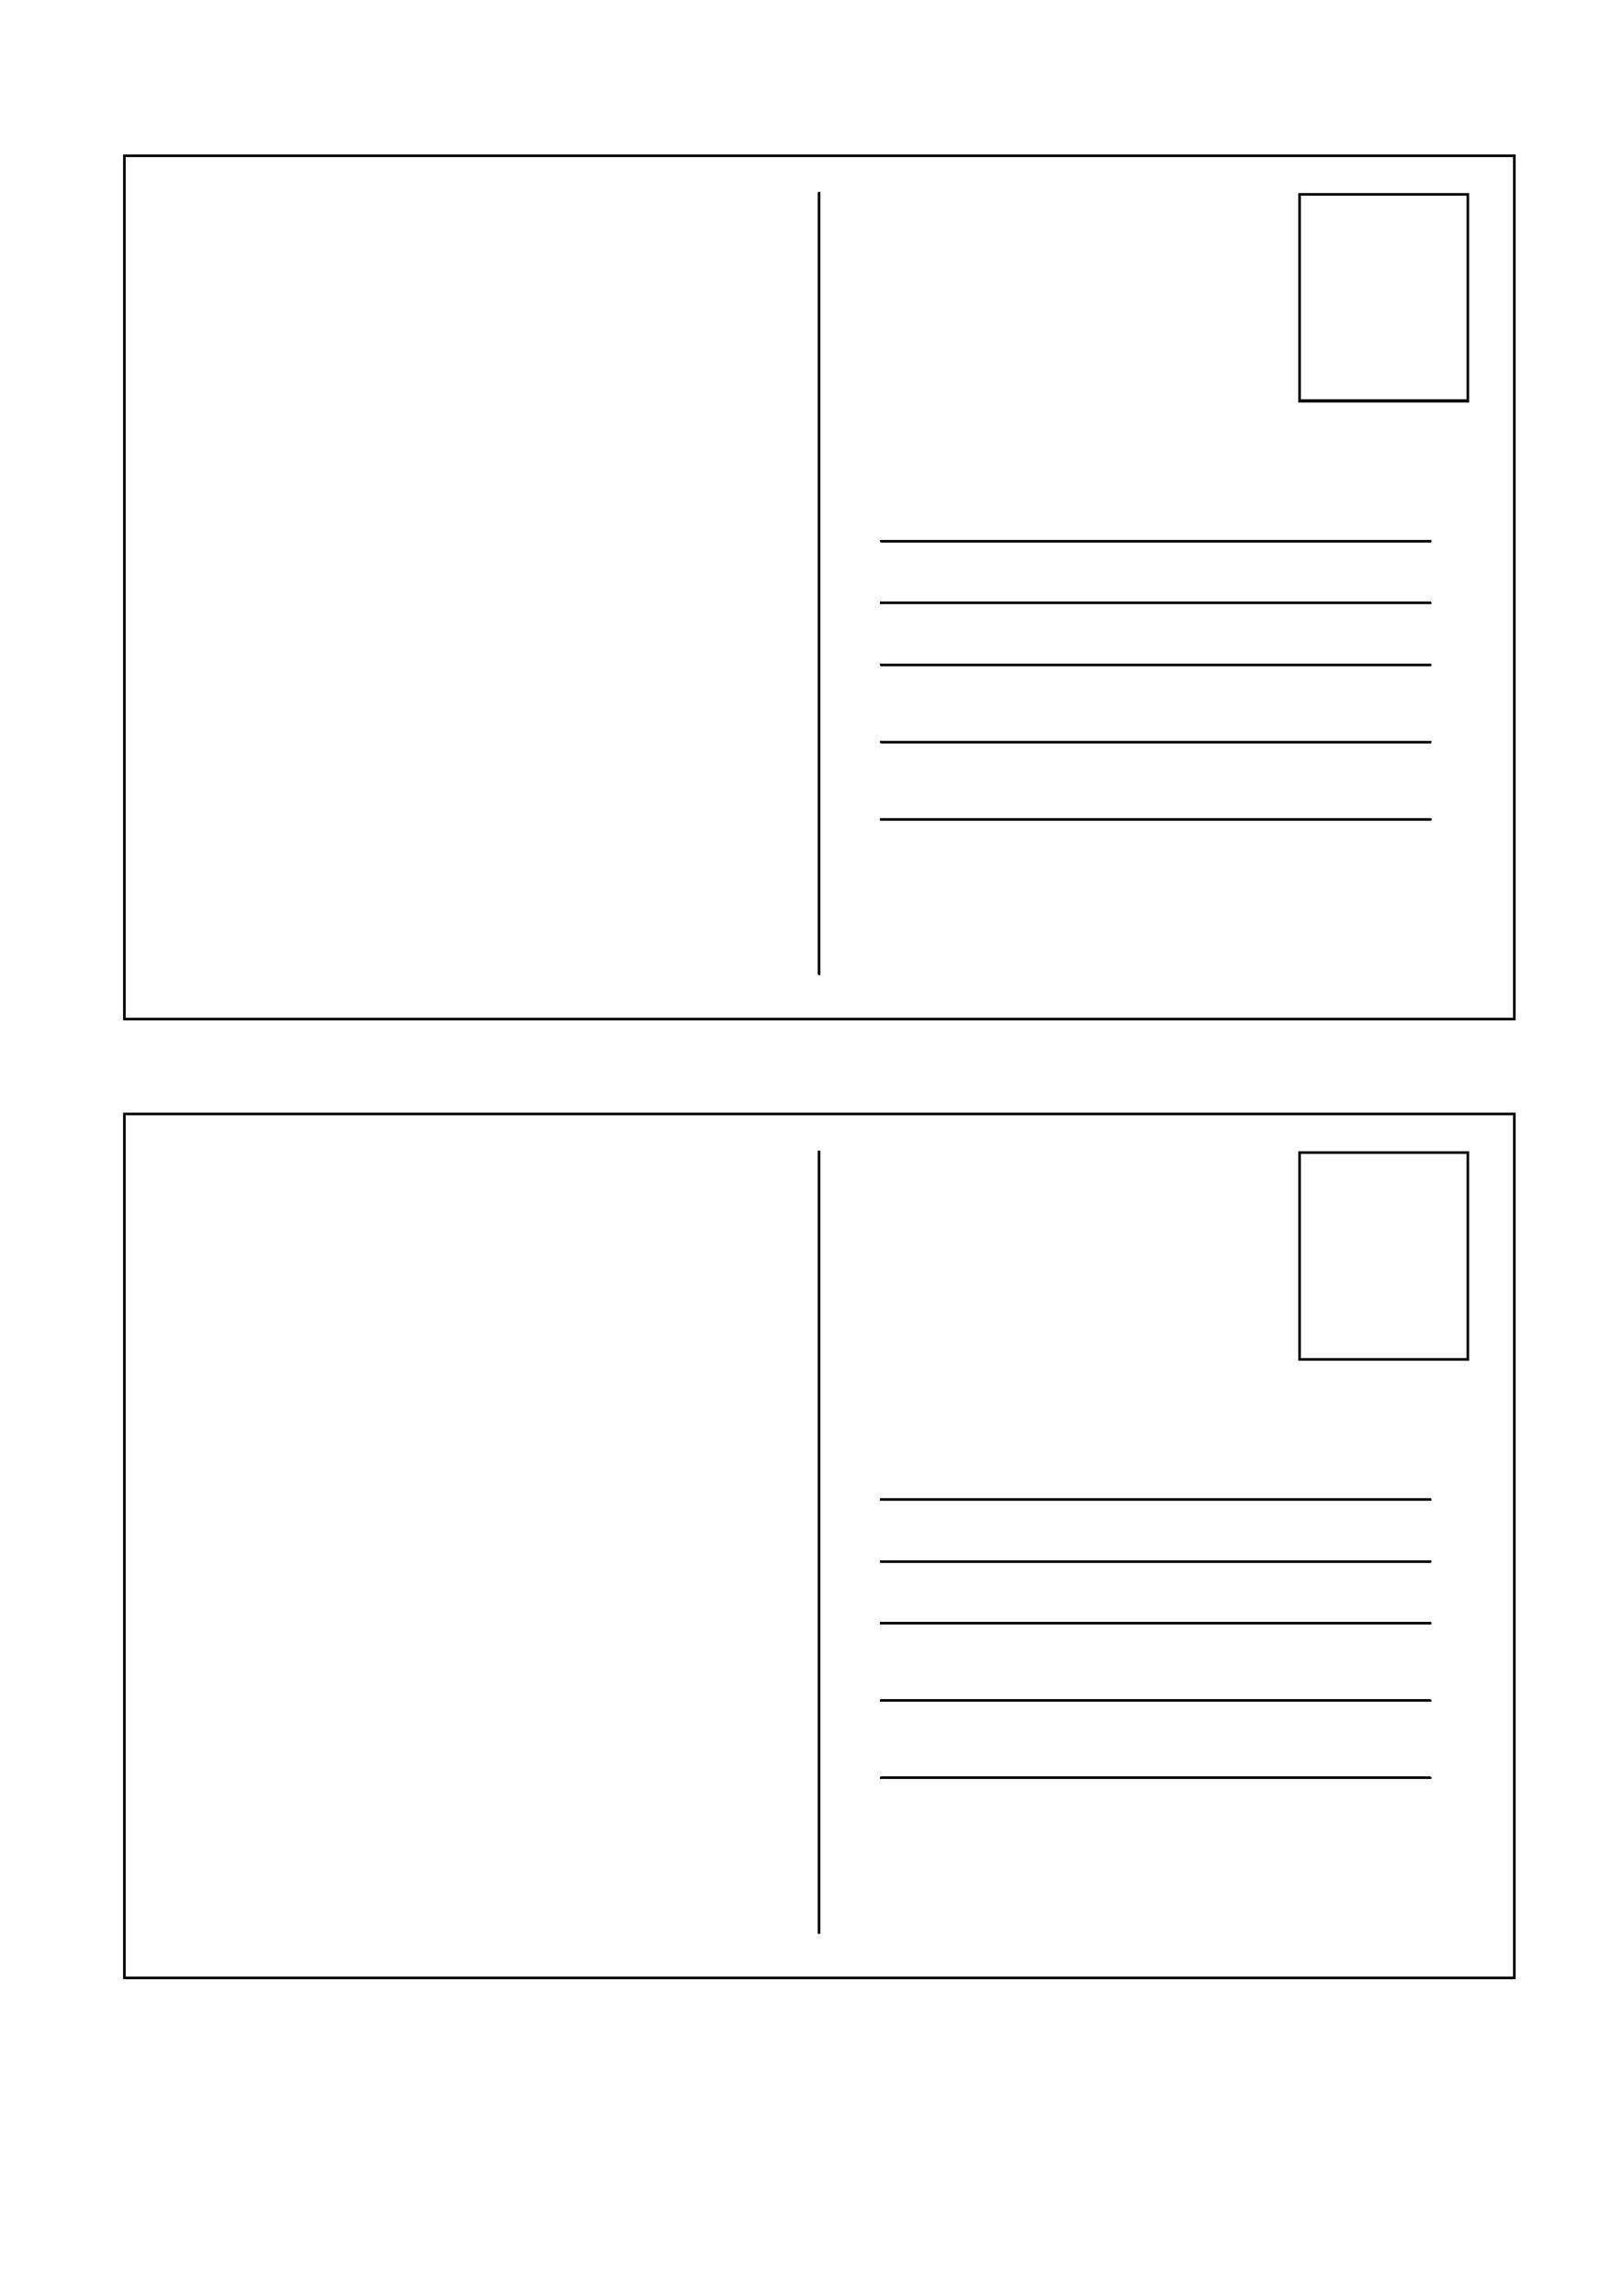 Fullsize Of How To Fill Out A Postcard